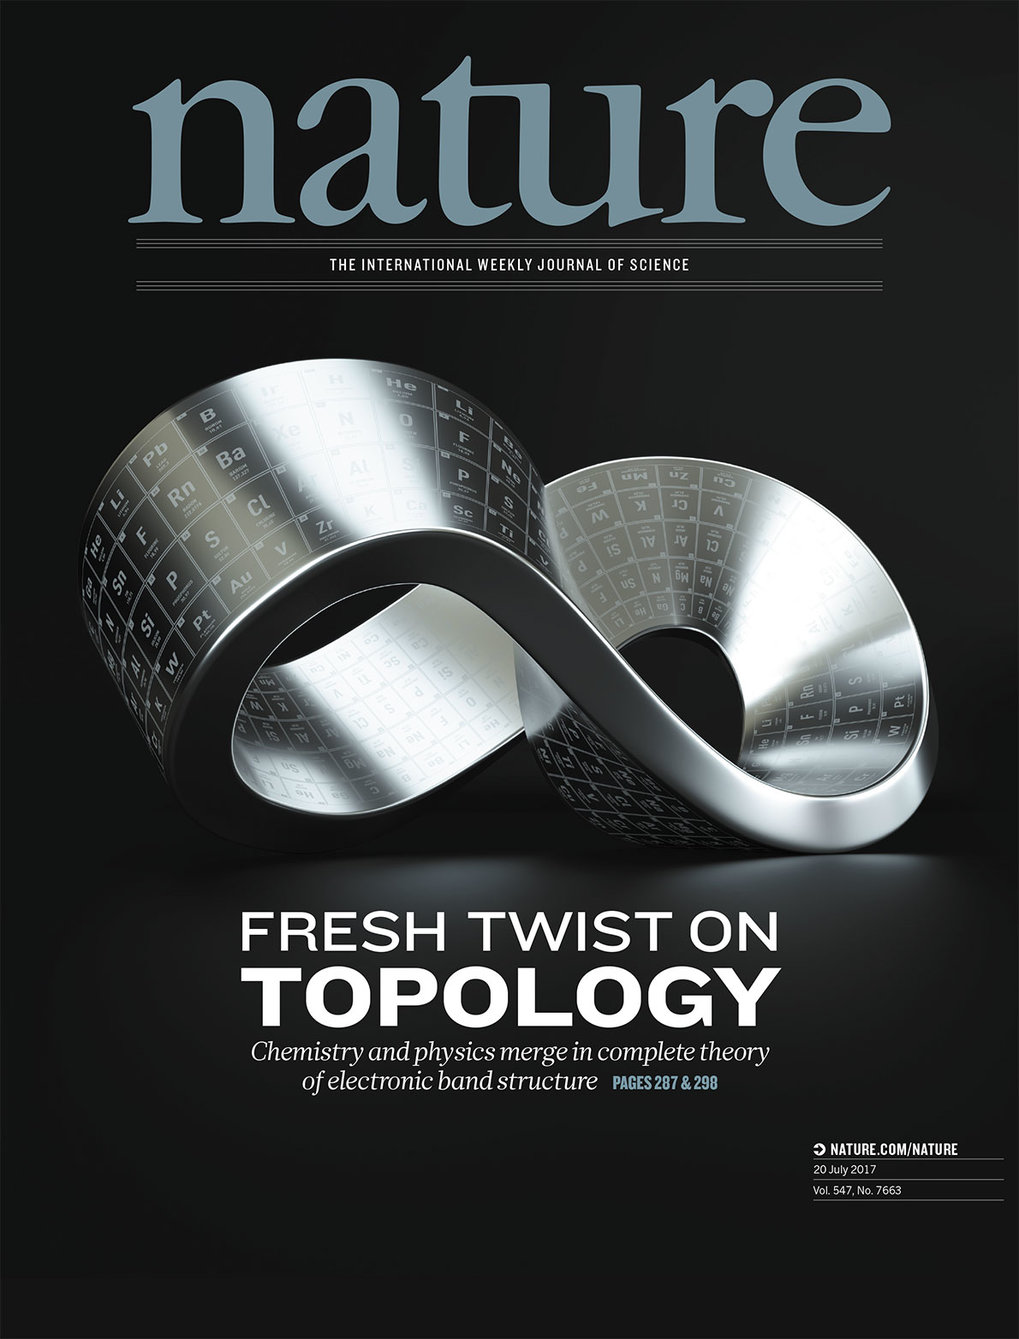 The study was featured on the cover of the journal <em>Nature</em>.